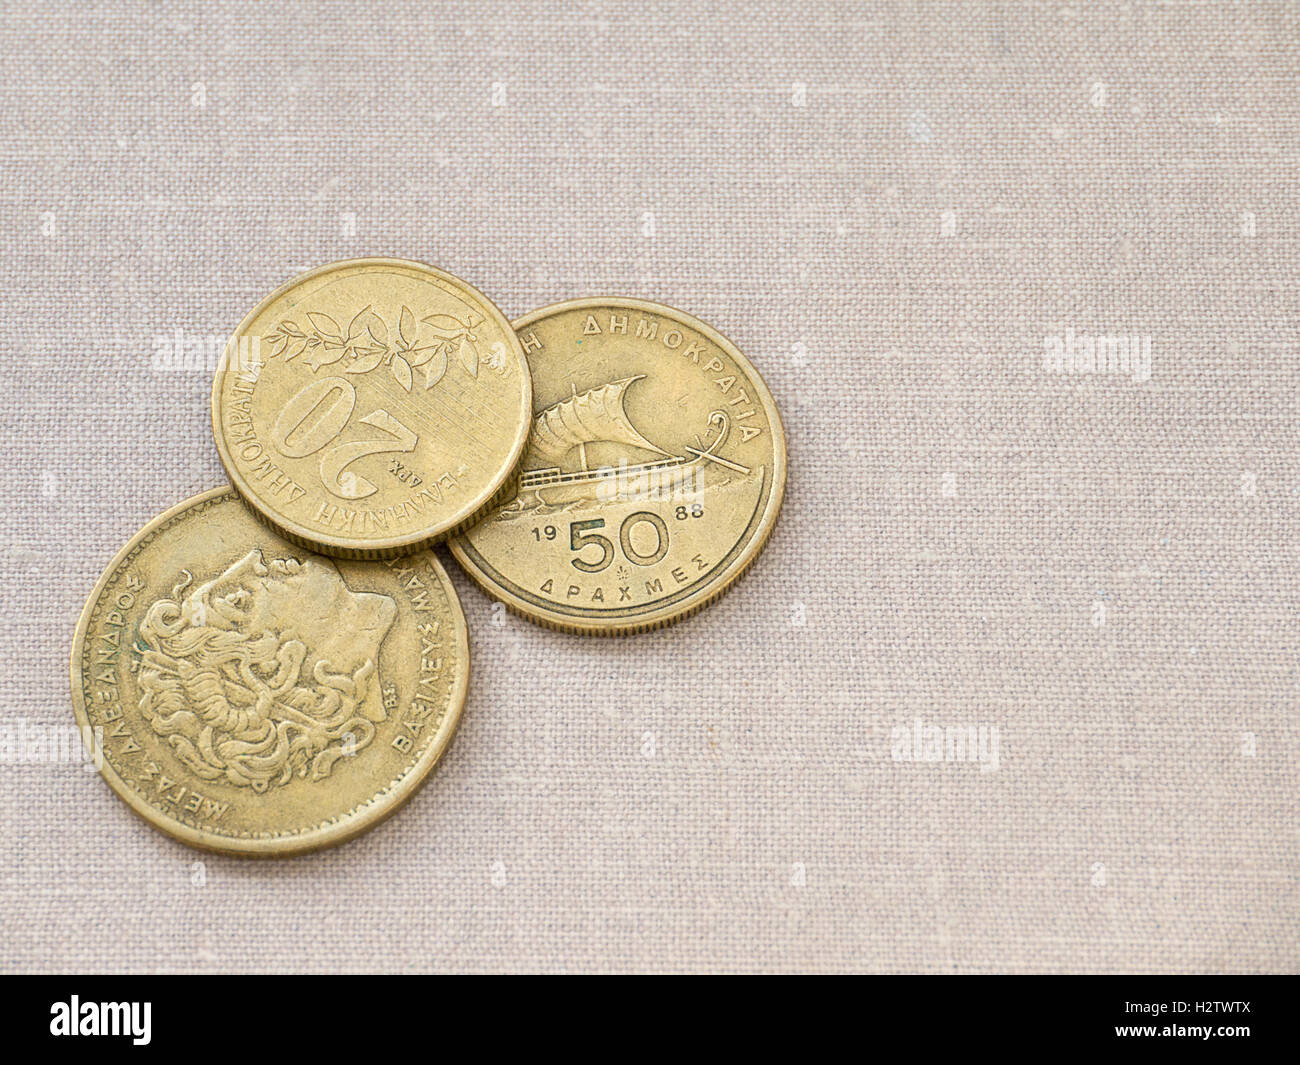 Greek drachma coins on the canvas background - Stock Image